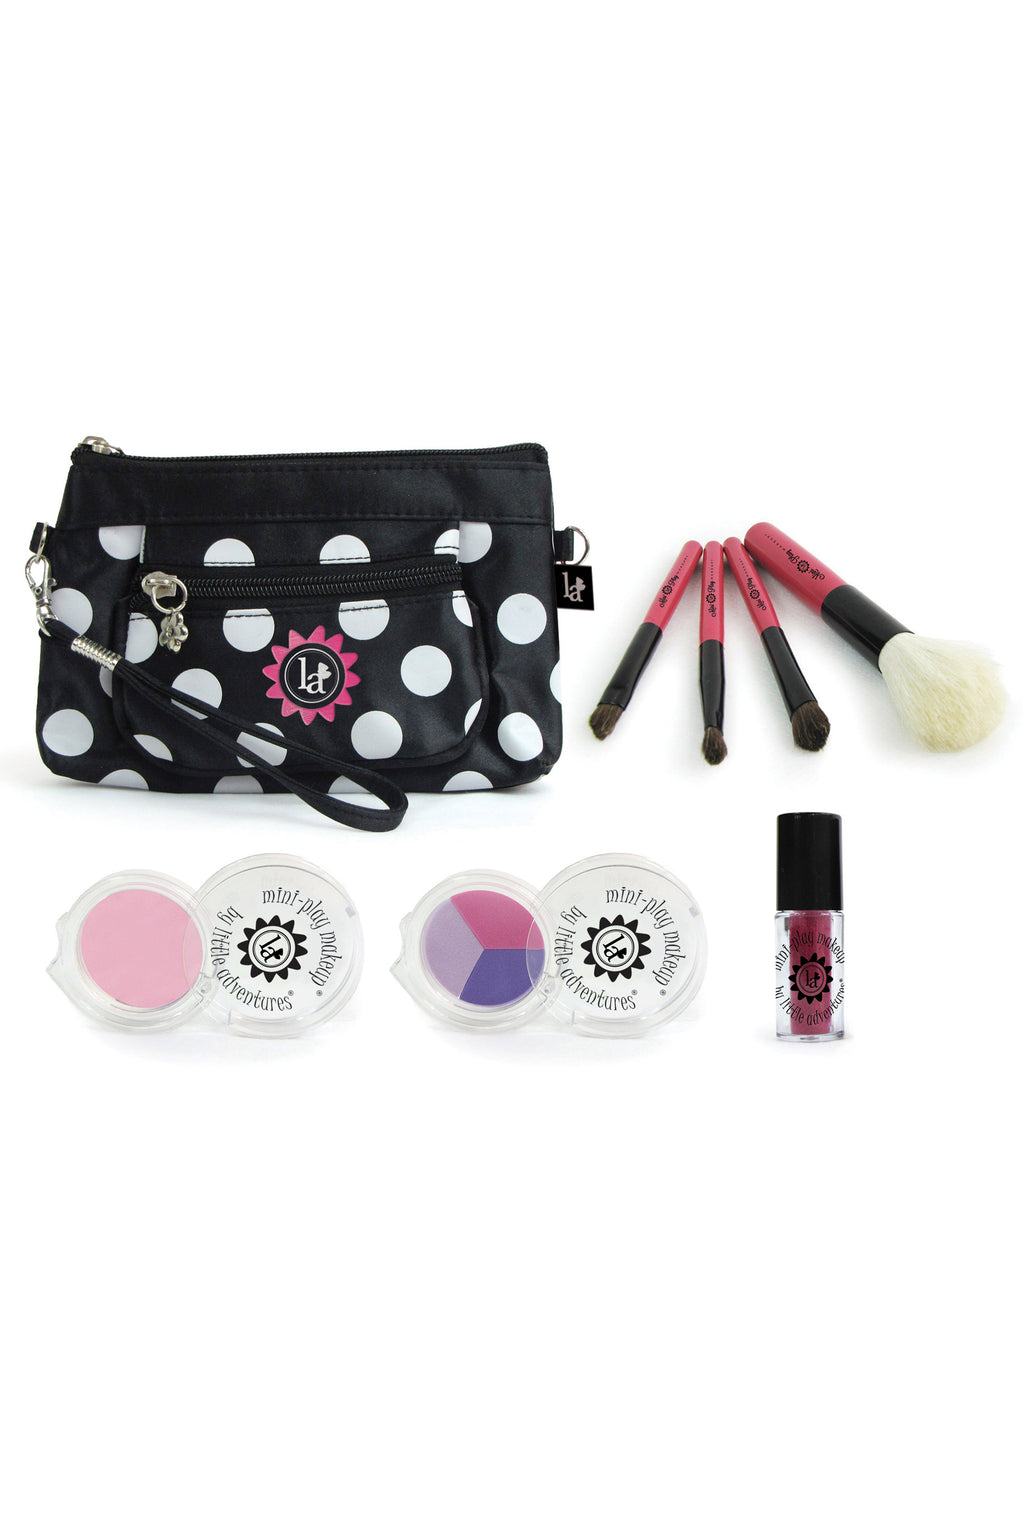 Mini Clutch Purse Kit Black